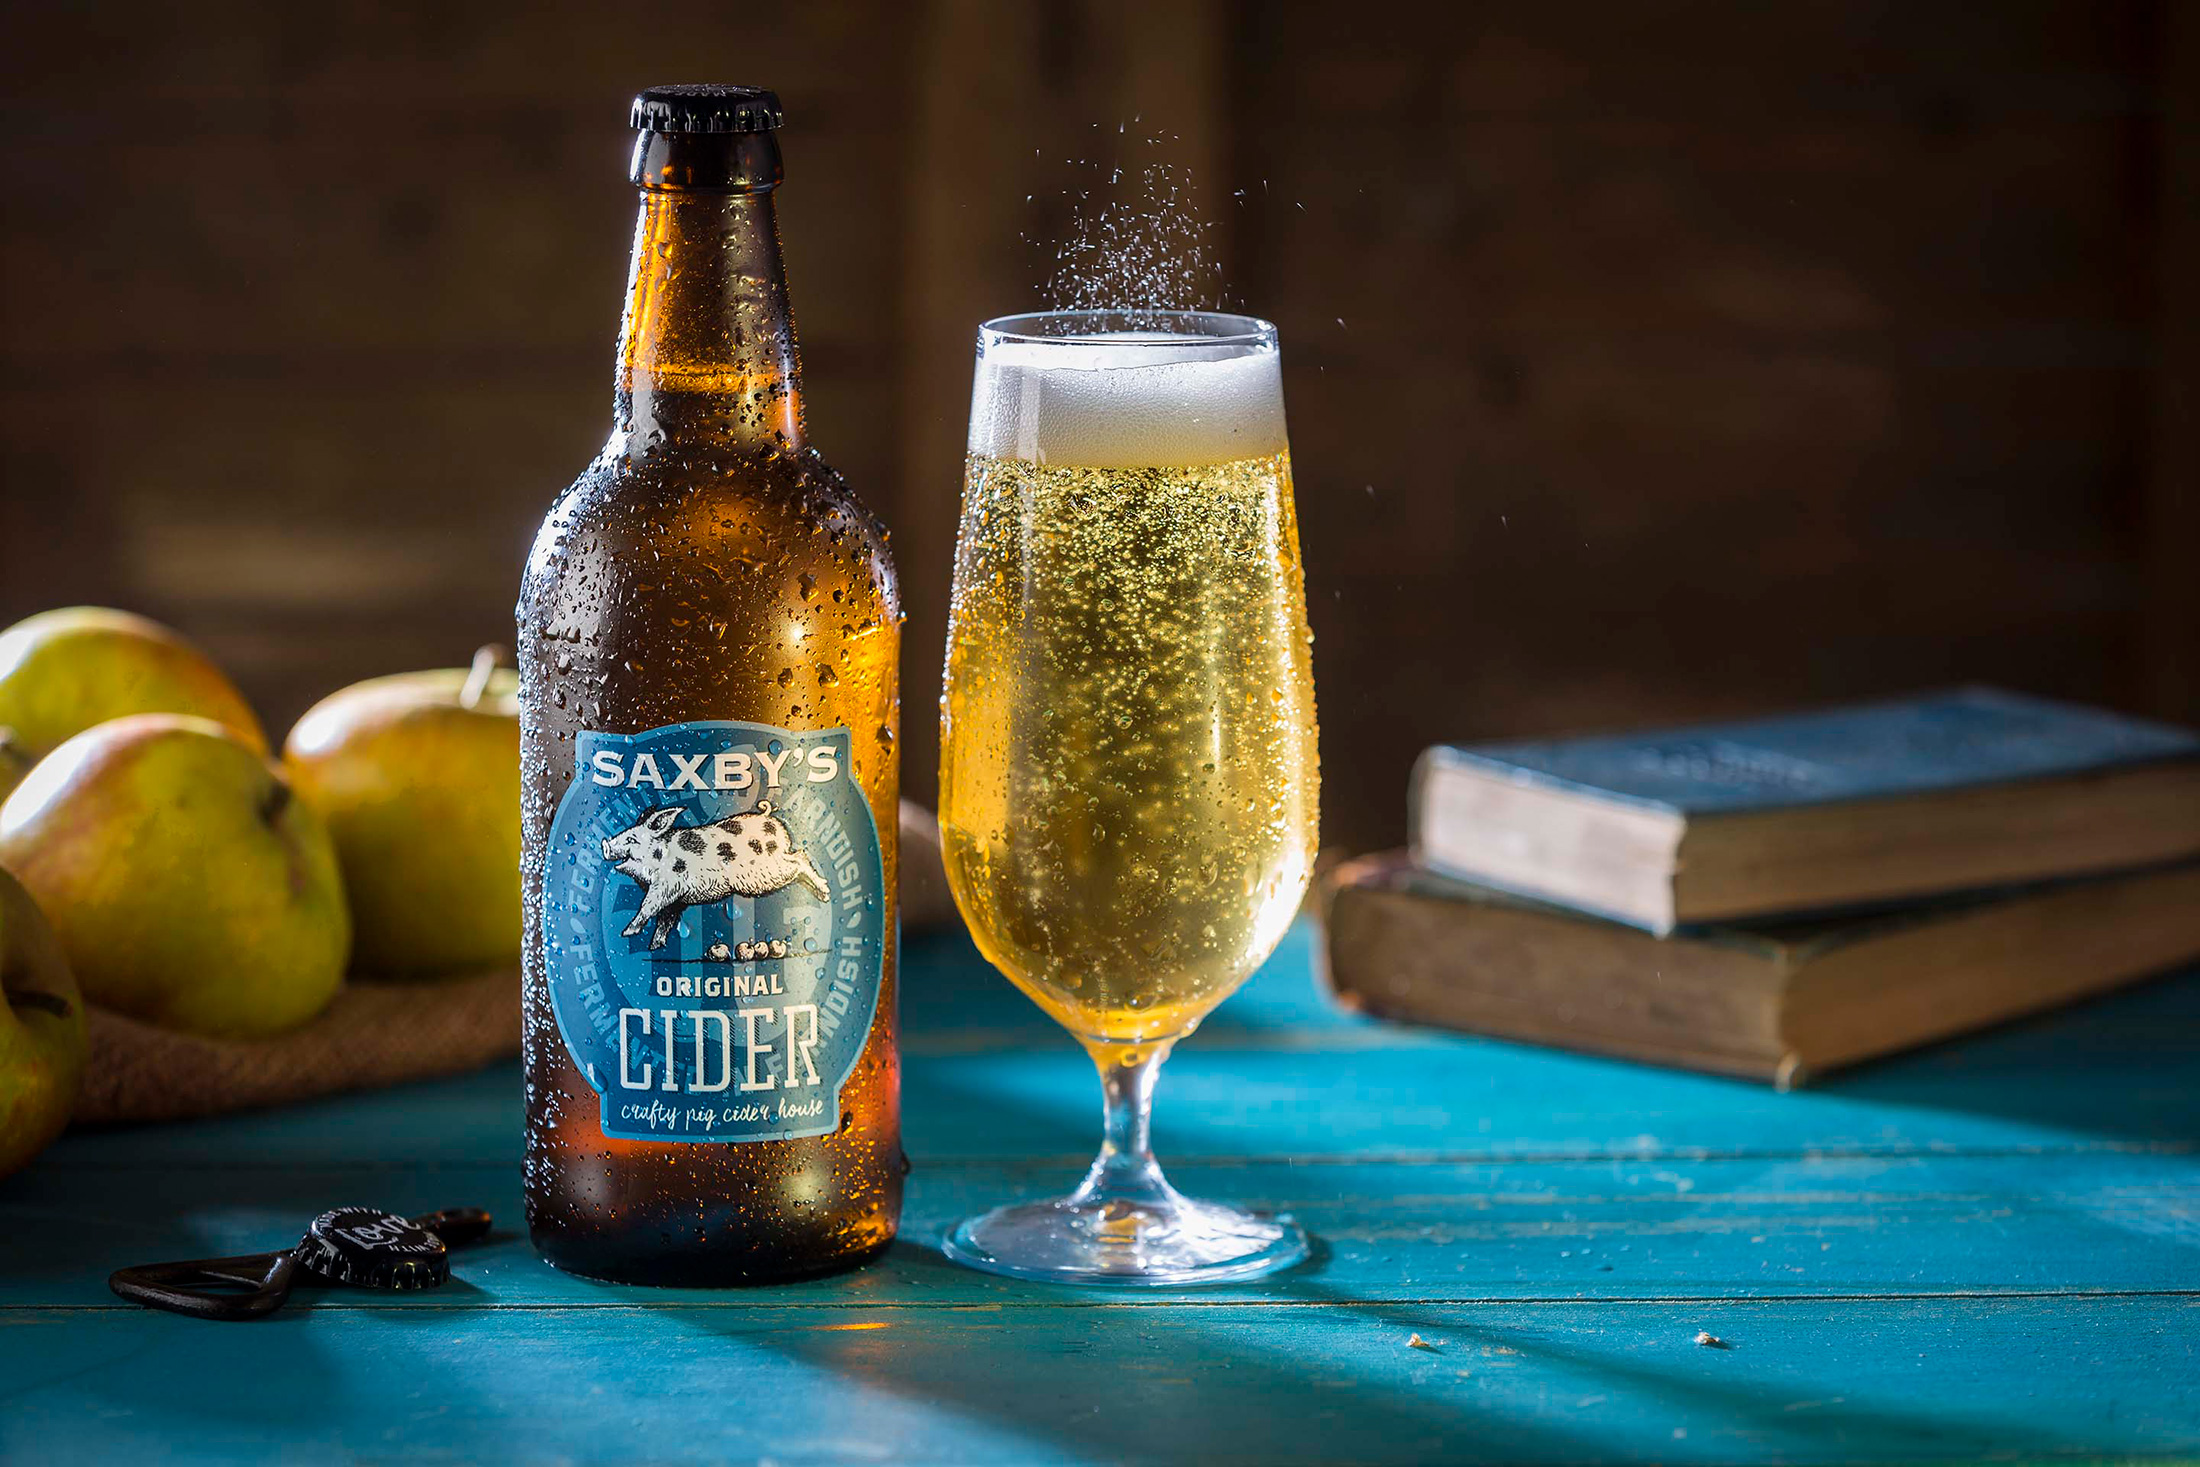 """""""Bright and clear pale gold cider with a lovely floral and earthy orchard aroma. Plenty of fresh apple in the mouth, well rounded, well balanced between the sweet and the sharp. A well-crafted cider."""" - 2019 Great Taste Judge's comments about Saxby's Original Cider"""